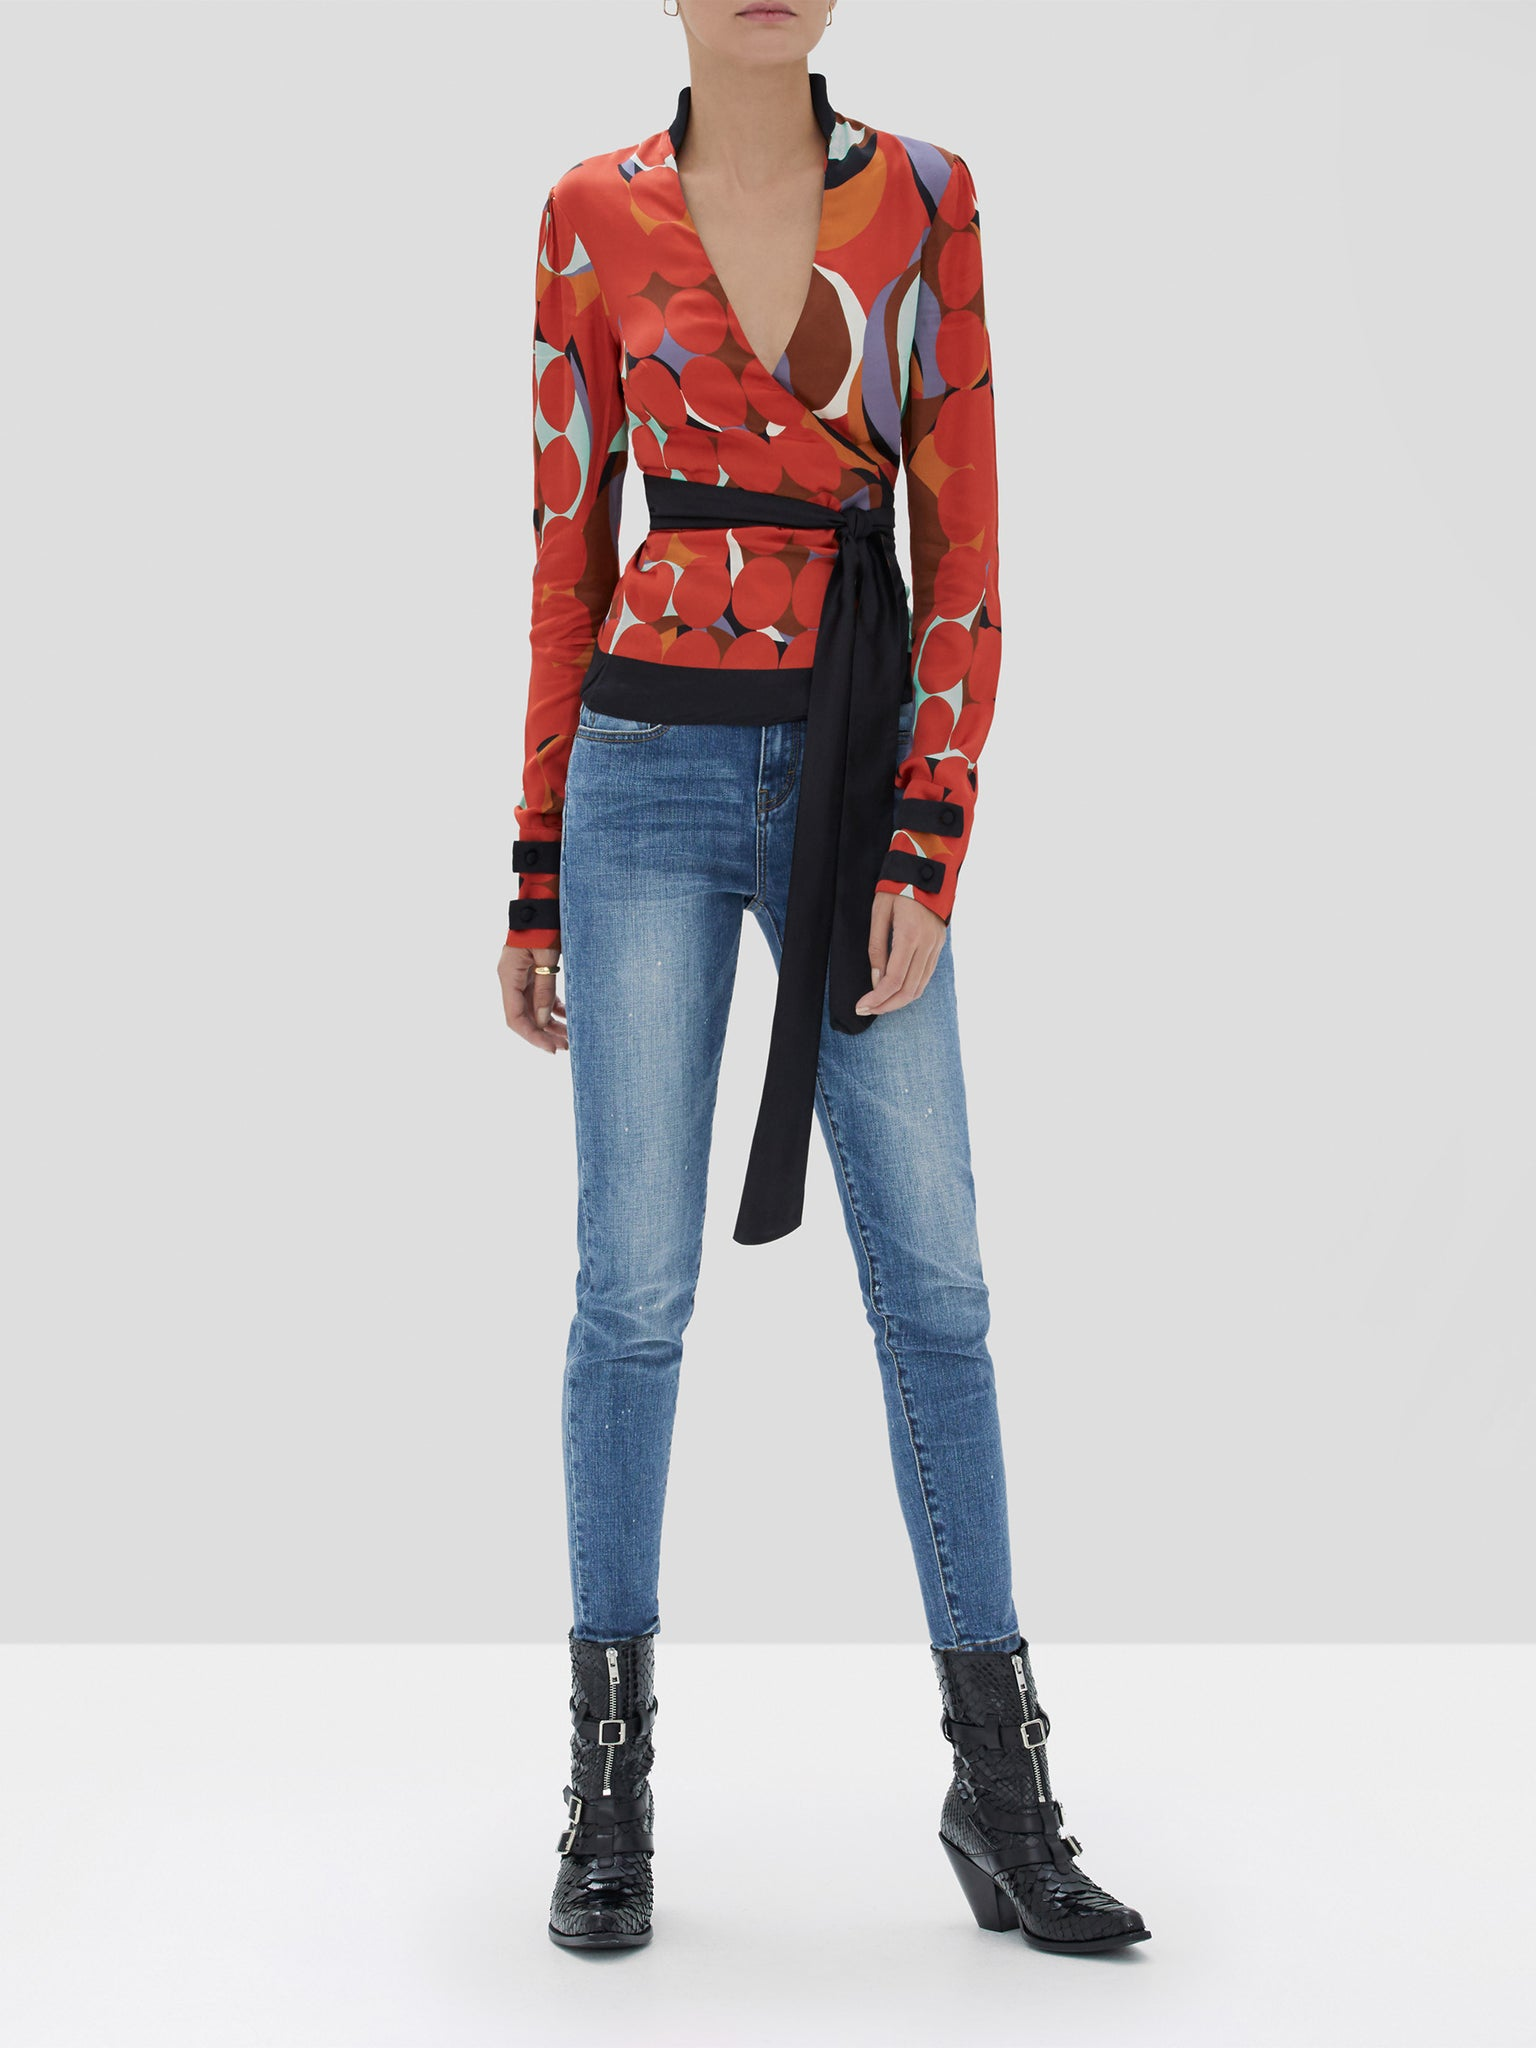 Alexis Tarvos Top in Red Eclipse from the Fall Winter 2019 Ready To Wear Collection